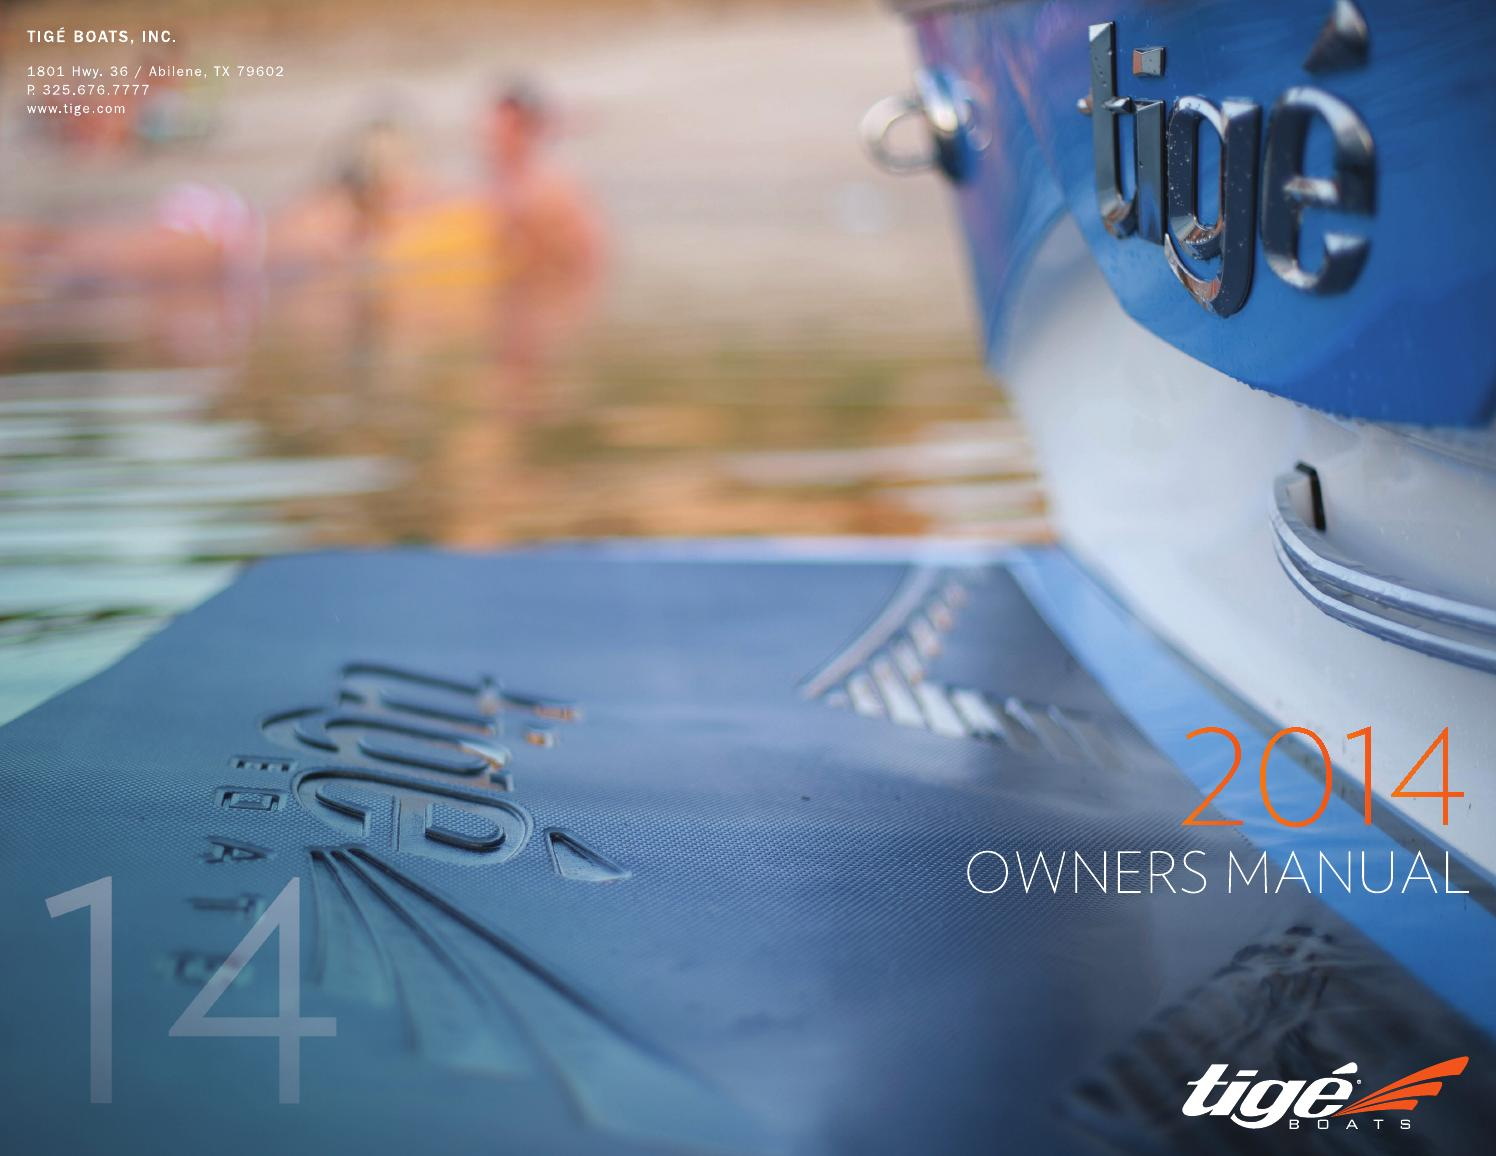 2014 Tige Owners Manual by Tige Boats - issuu